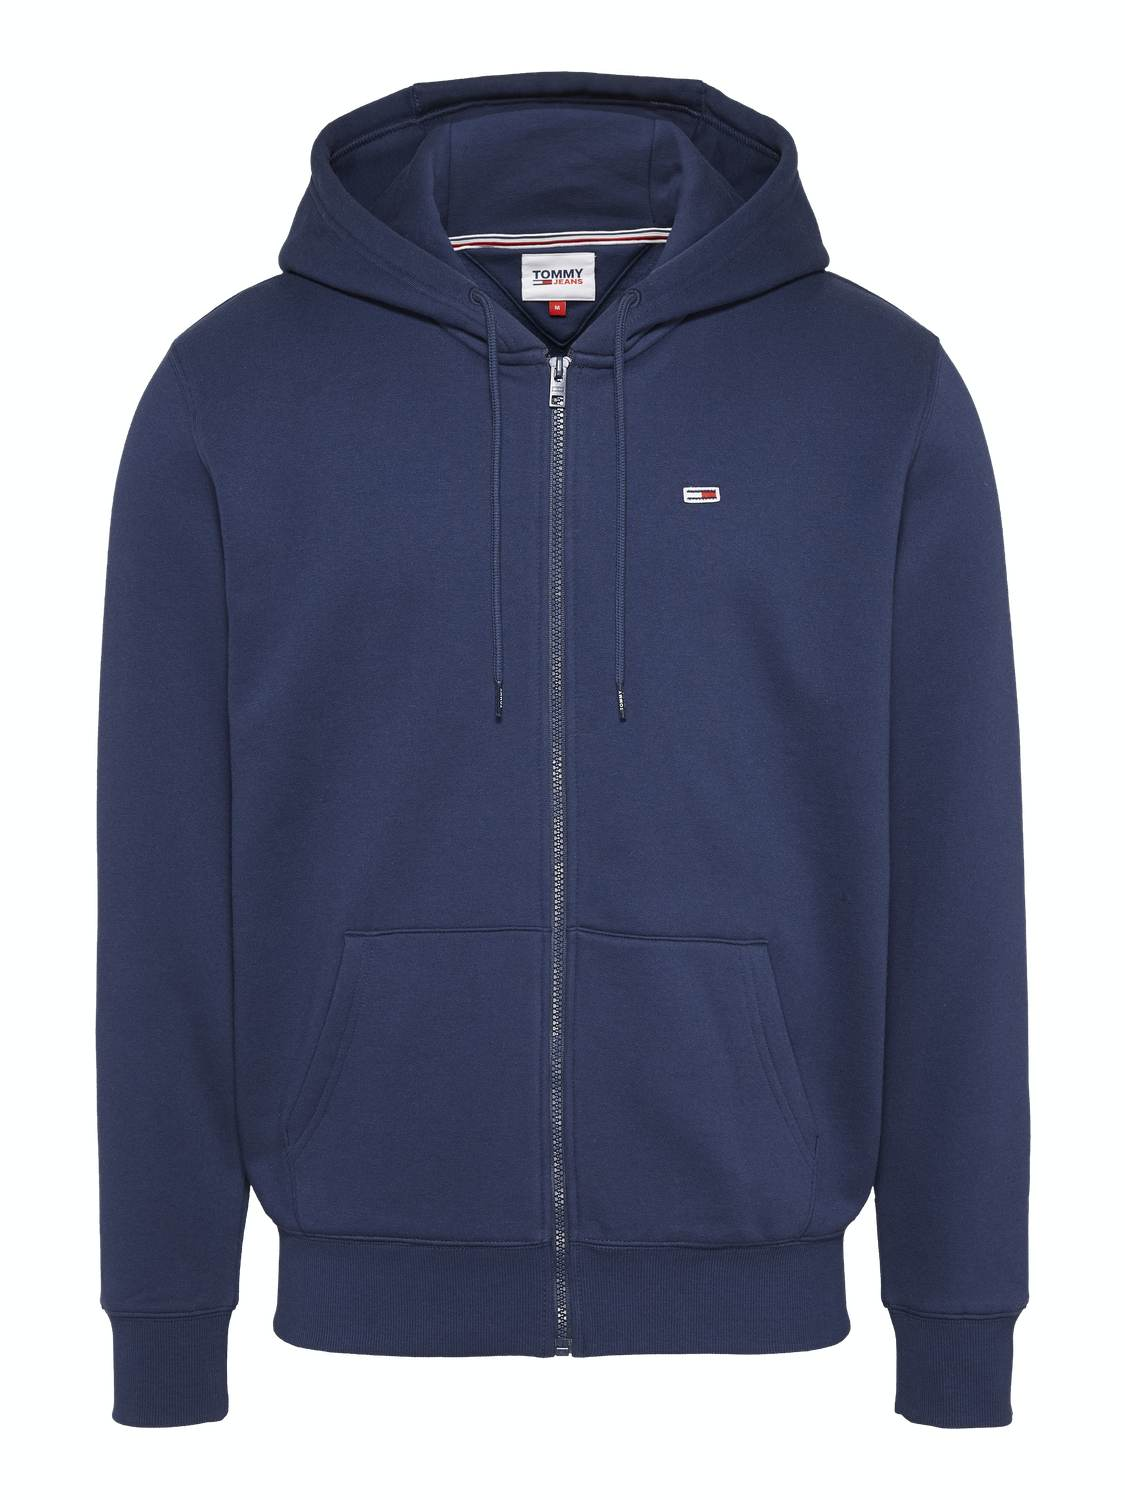 TOMMY HILFIGER - Fleece cardigan navy | Gate36 Hobro